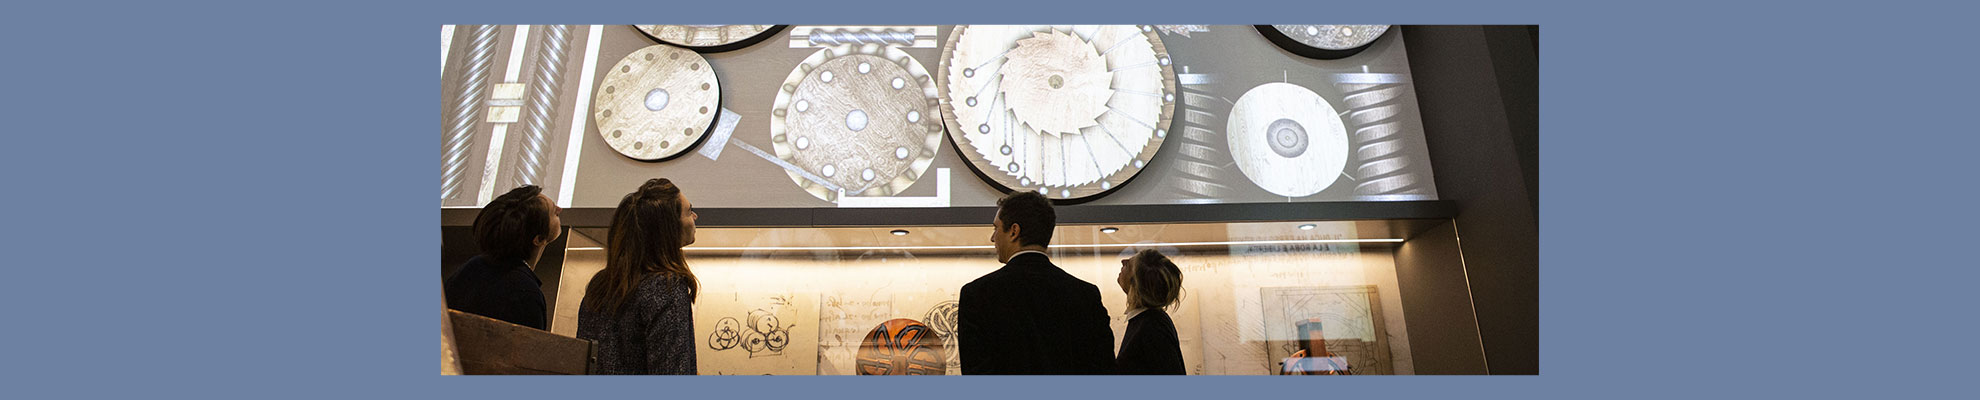 IBSA Foundation partner Leonardo da Vinci National Museum of Science and Technology in Milan